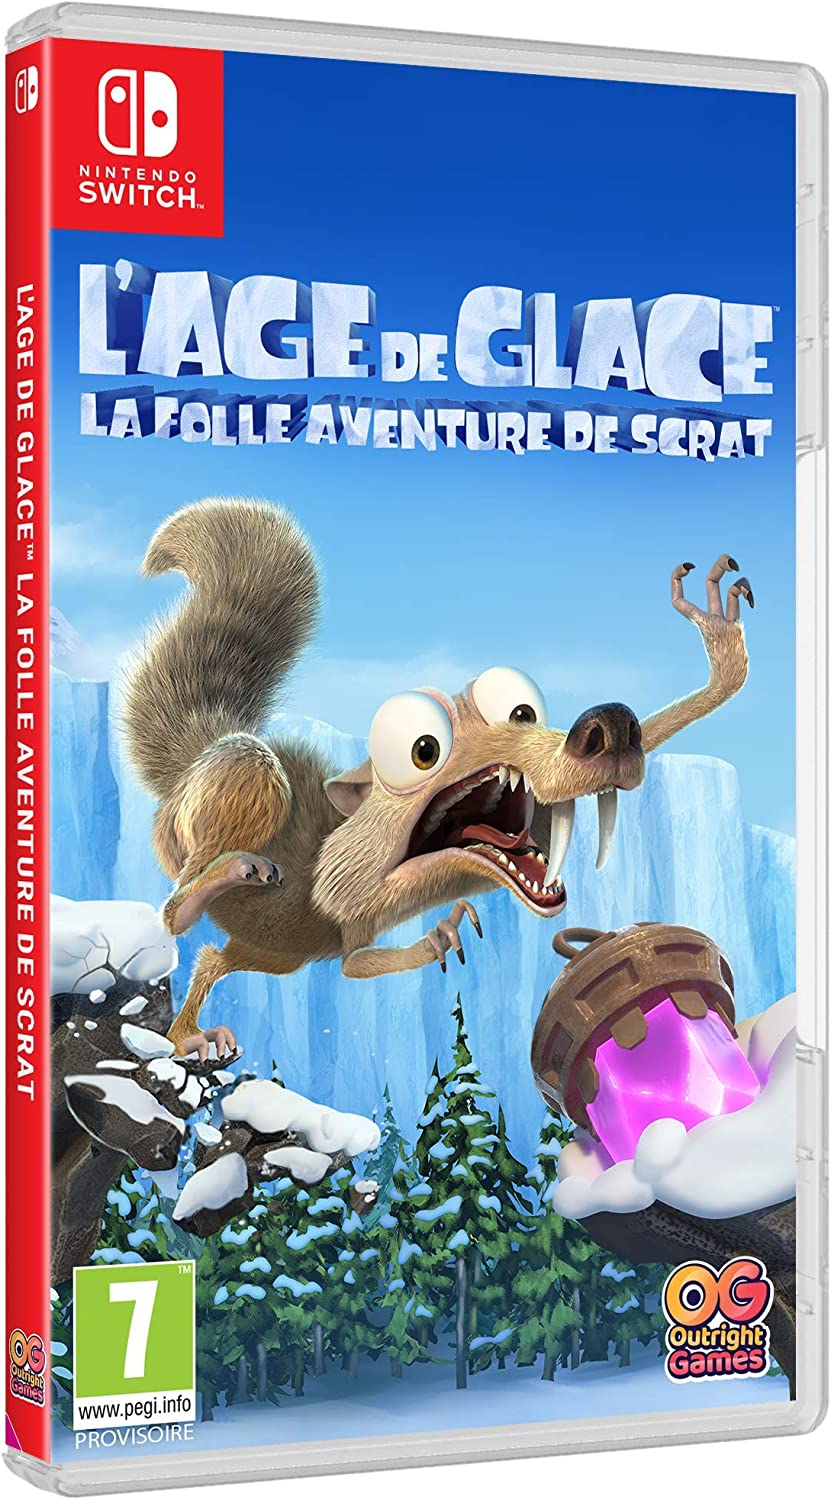 L'âge de glace [SWITCH] : la folle aventure de Scrat | Outright Games